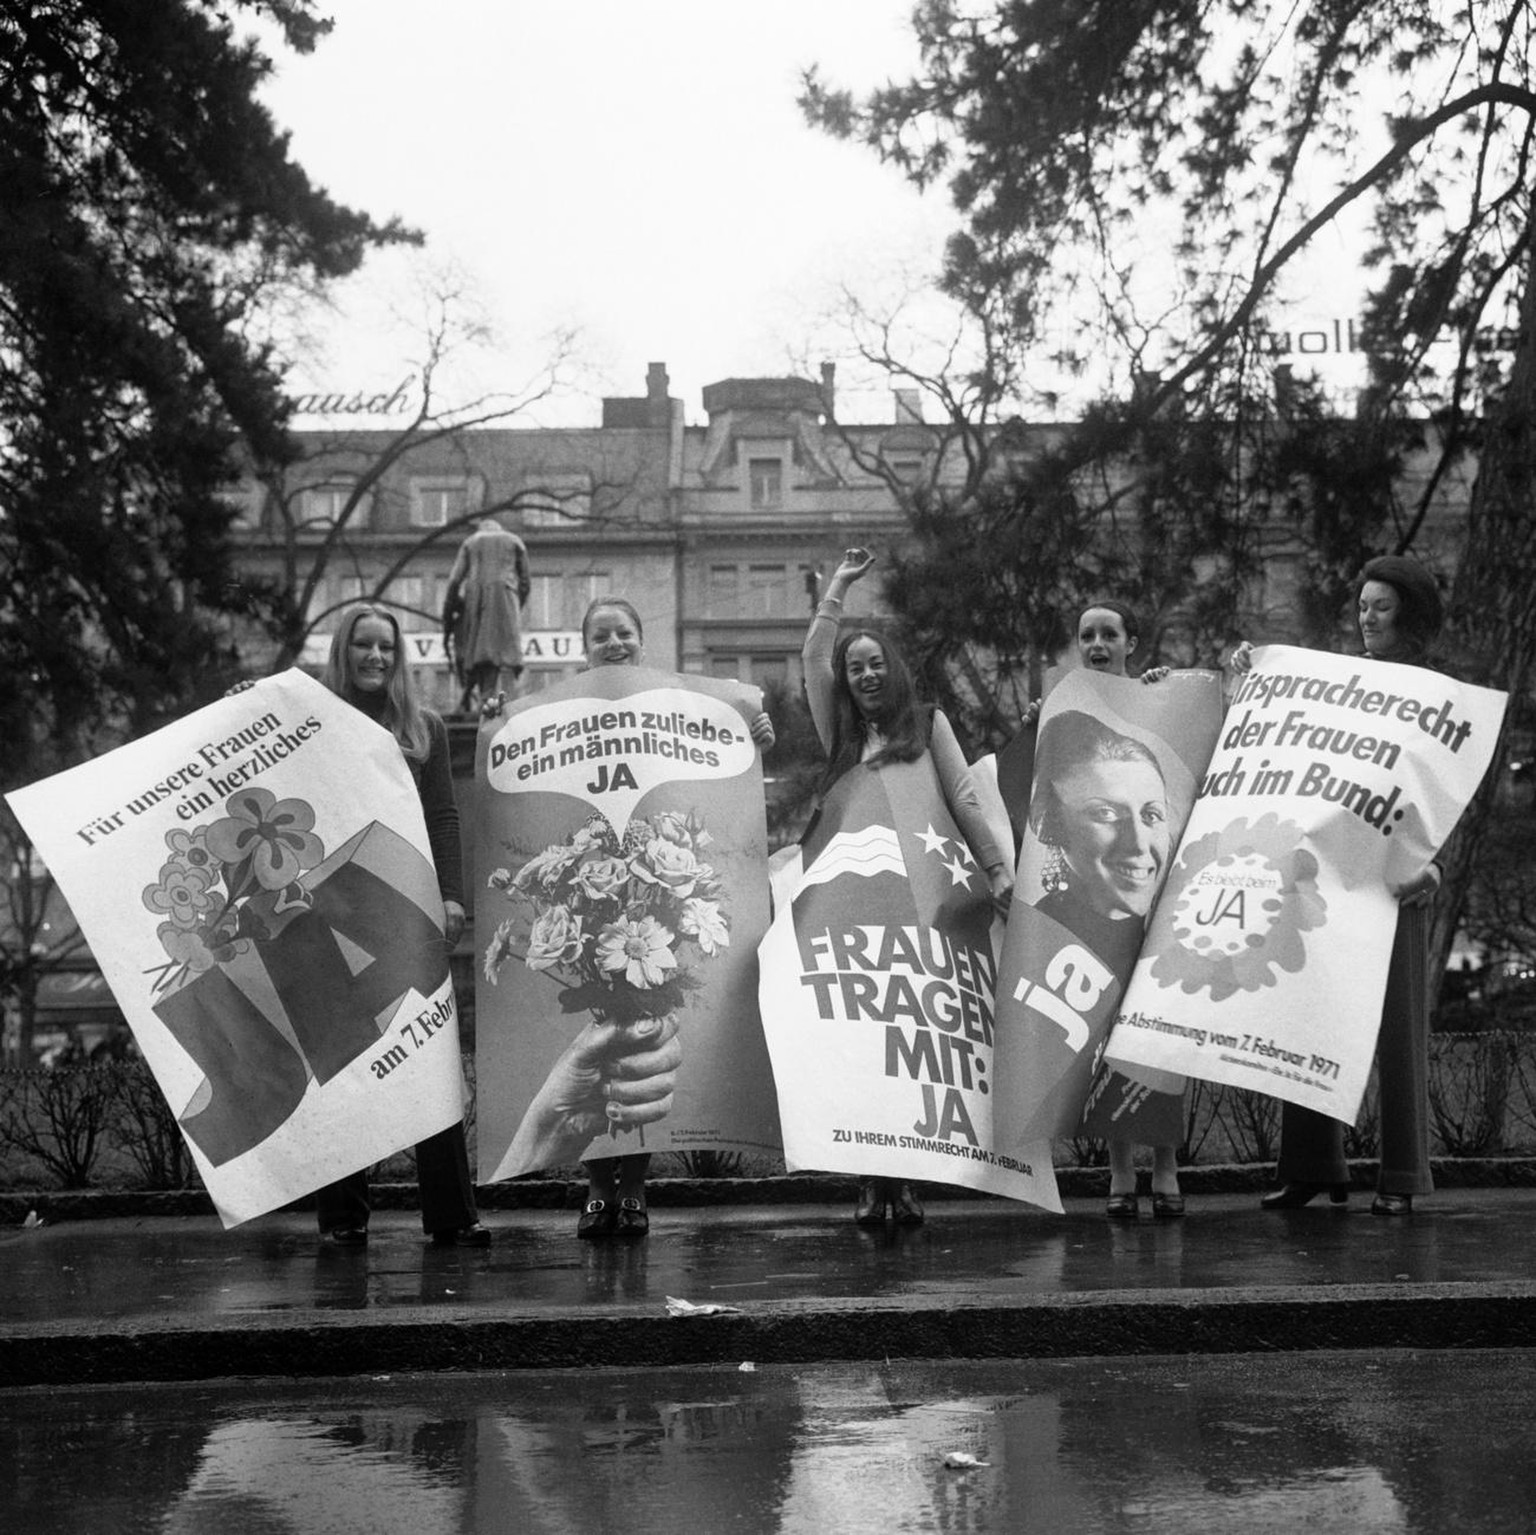 Supporters of the women's right to vote pose with posters in the run-up to the federal vote on February 7, 1971, pictured in Zurich, Switzerland, on January 26, 1971. (KEYSTONE/Str)  Befuerworterinnen des Frauenstimmrechts posieren am 26. Januar im Vorfeld der nationalen Abstimmung vom 7. Februar 1971 zum Frauenstimmrecht auf Bundesebene mit Ja-Plakaten in Zuerich, Schweiz. (KEYSTONE/Str)